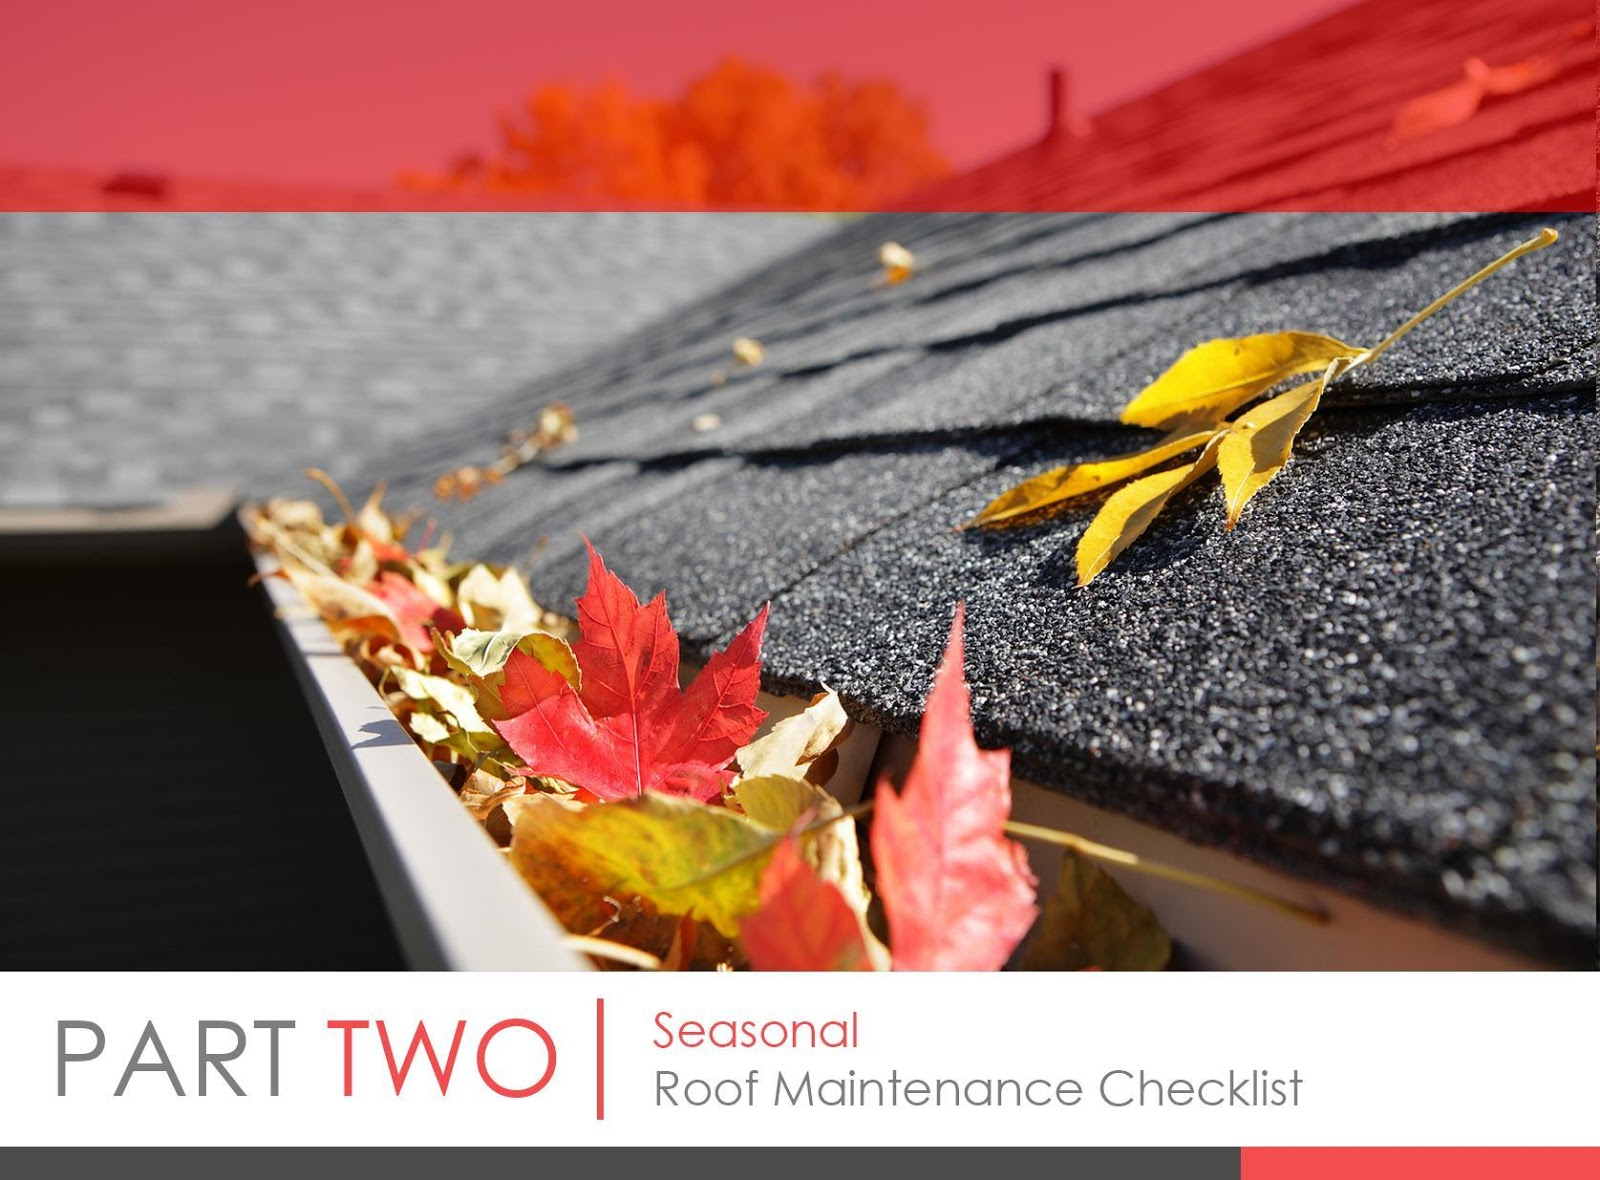 Seasonal Roof Maintenance Checklist